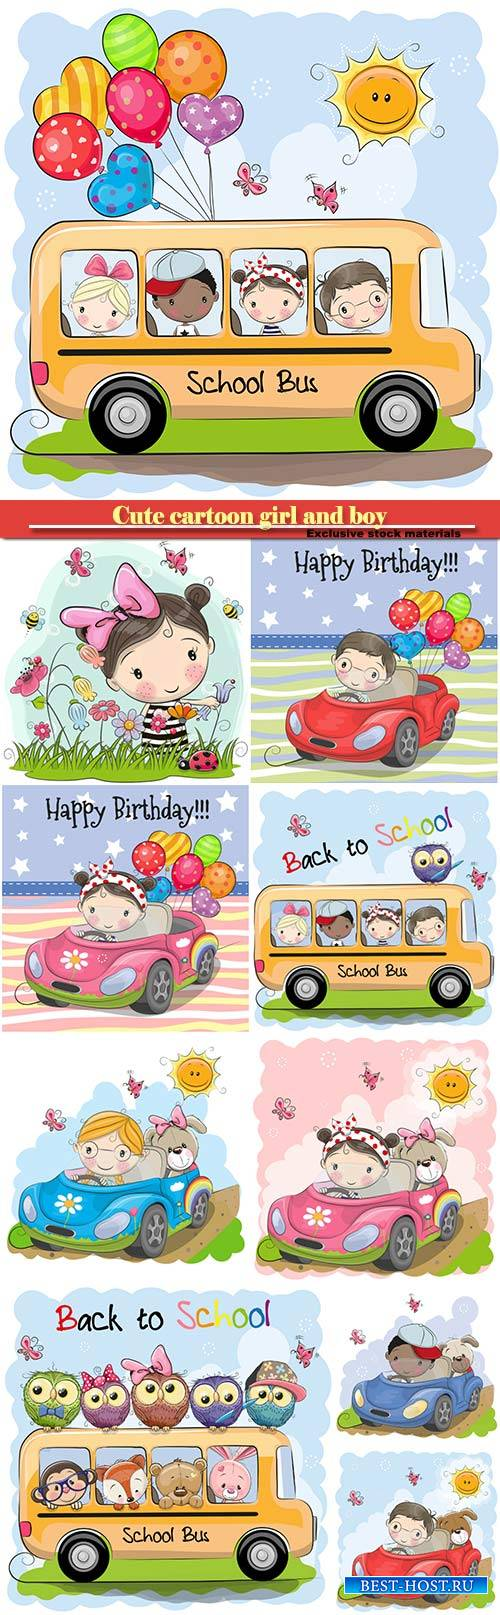 Cute cartoon girl and boy with balloon goes on a car